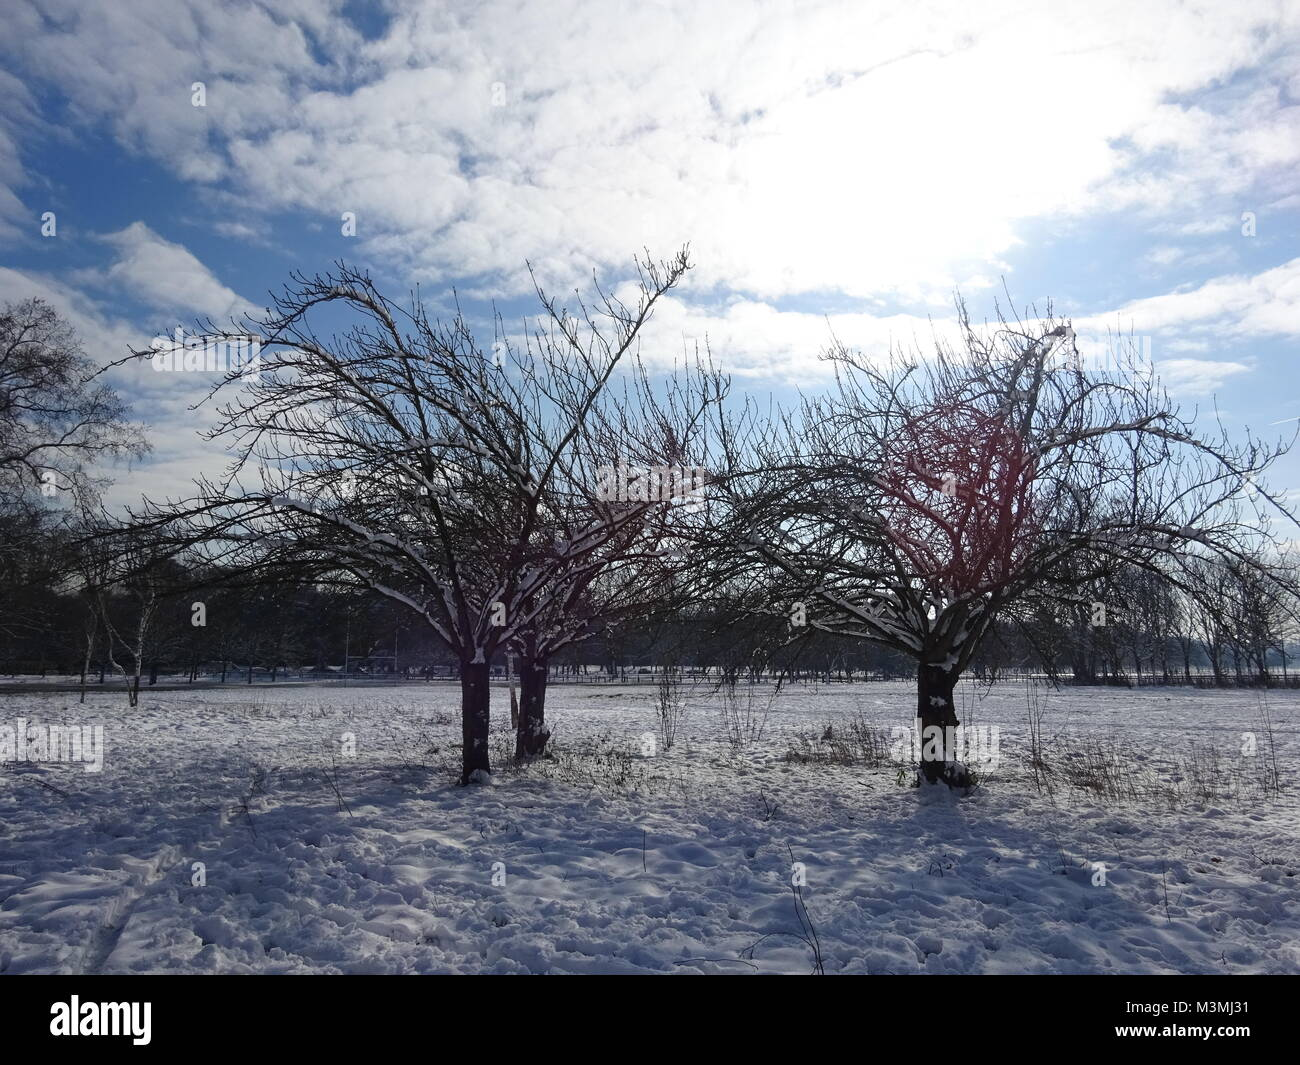 Three Trees weathering the Winter snow - Stock Image